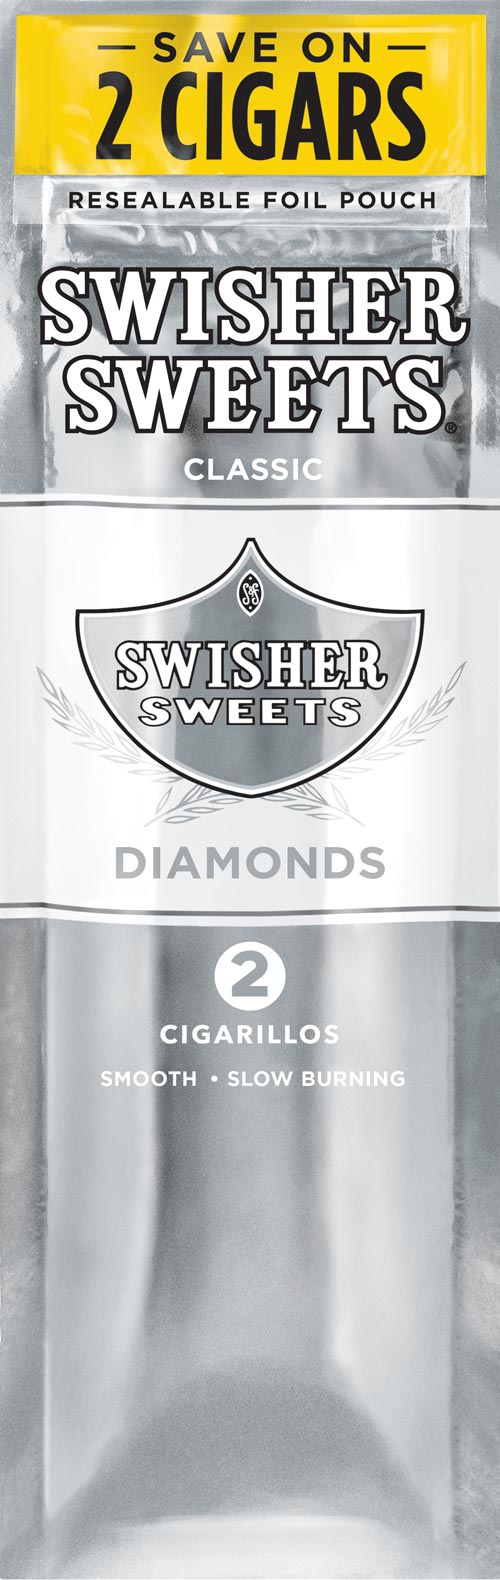 Our Cigarillos Swisher Sweets